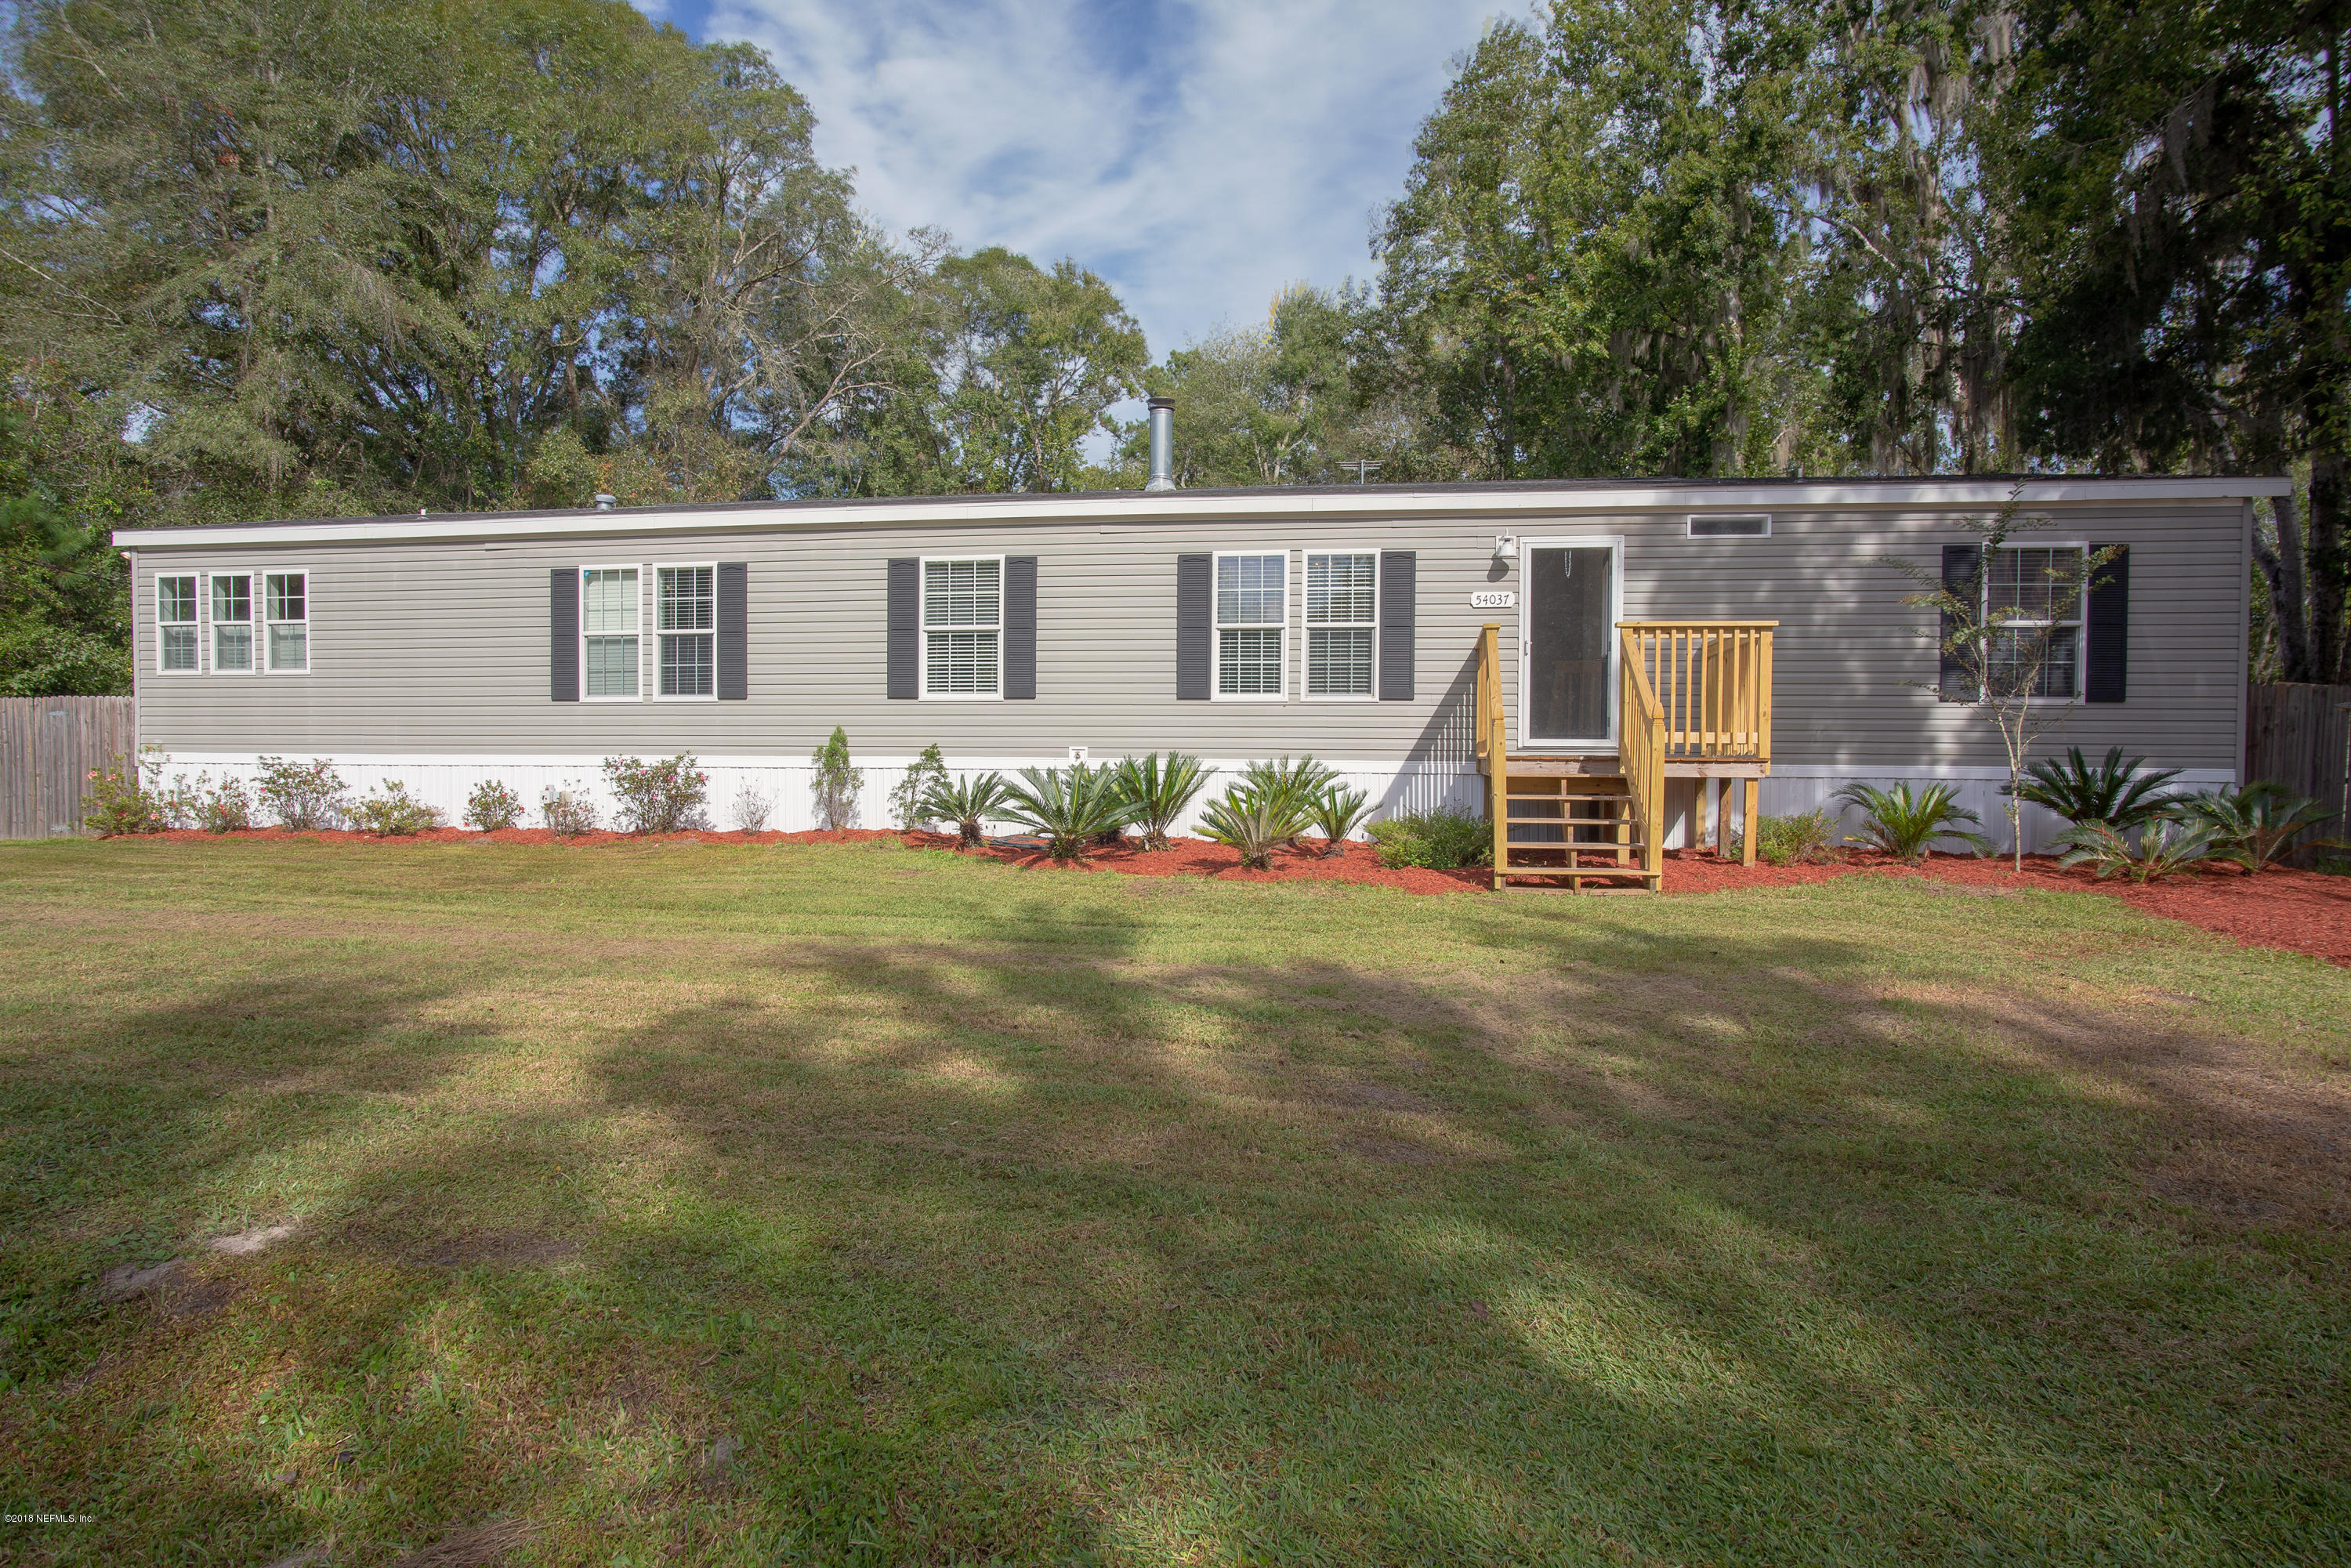 54037 PARKS, CALLAHAN, FLORIDA 32011, 4 Bedrooms Bedrooms, ,3 BathroomsBathrooms,Residential - mobile home,For sale,PARKS,966702